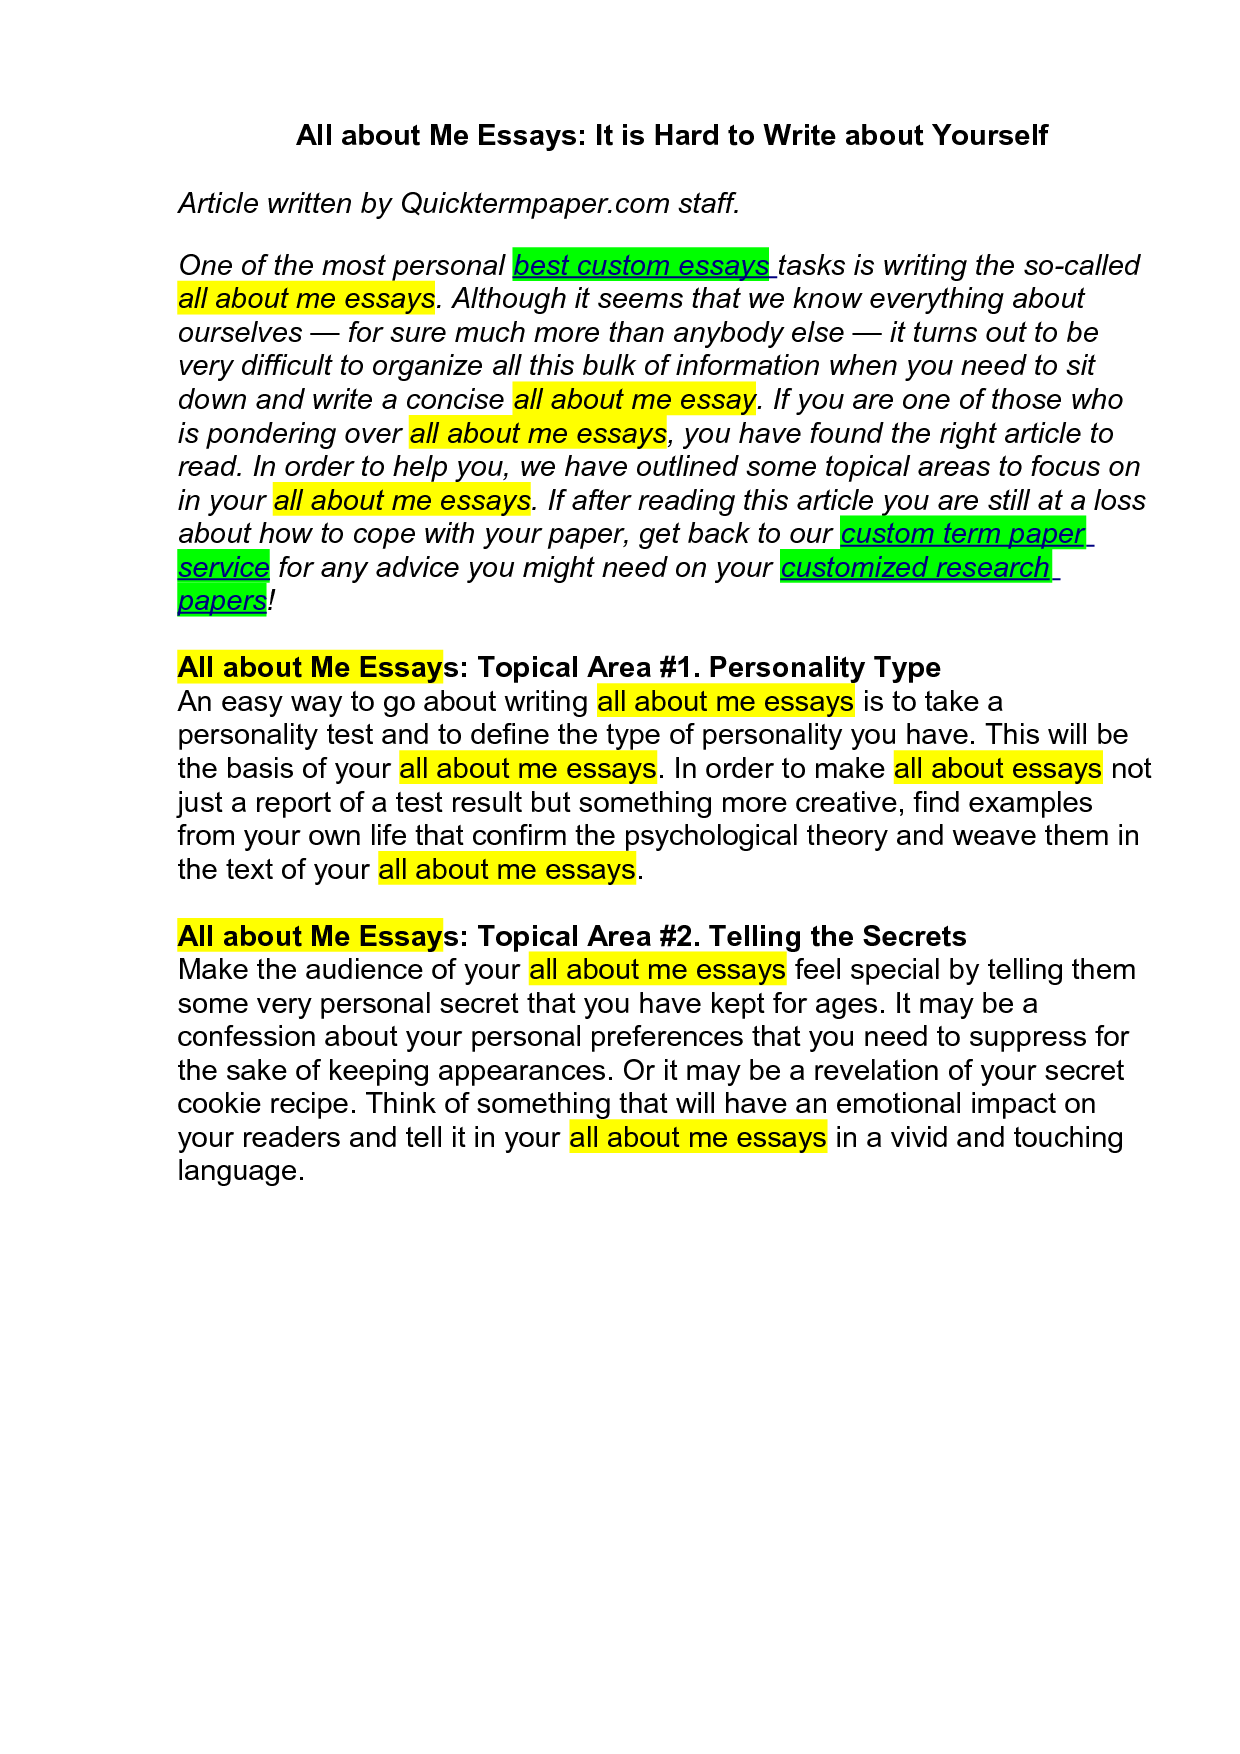 021 Essay Example How To Start An Amazing Argumentative About A Book With Definition Your Life Full